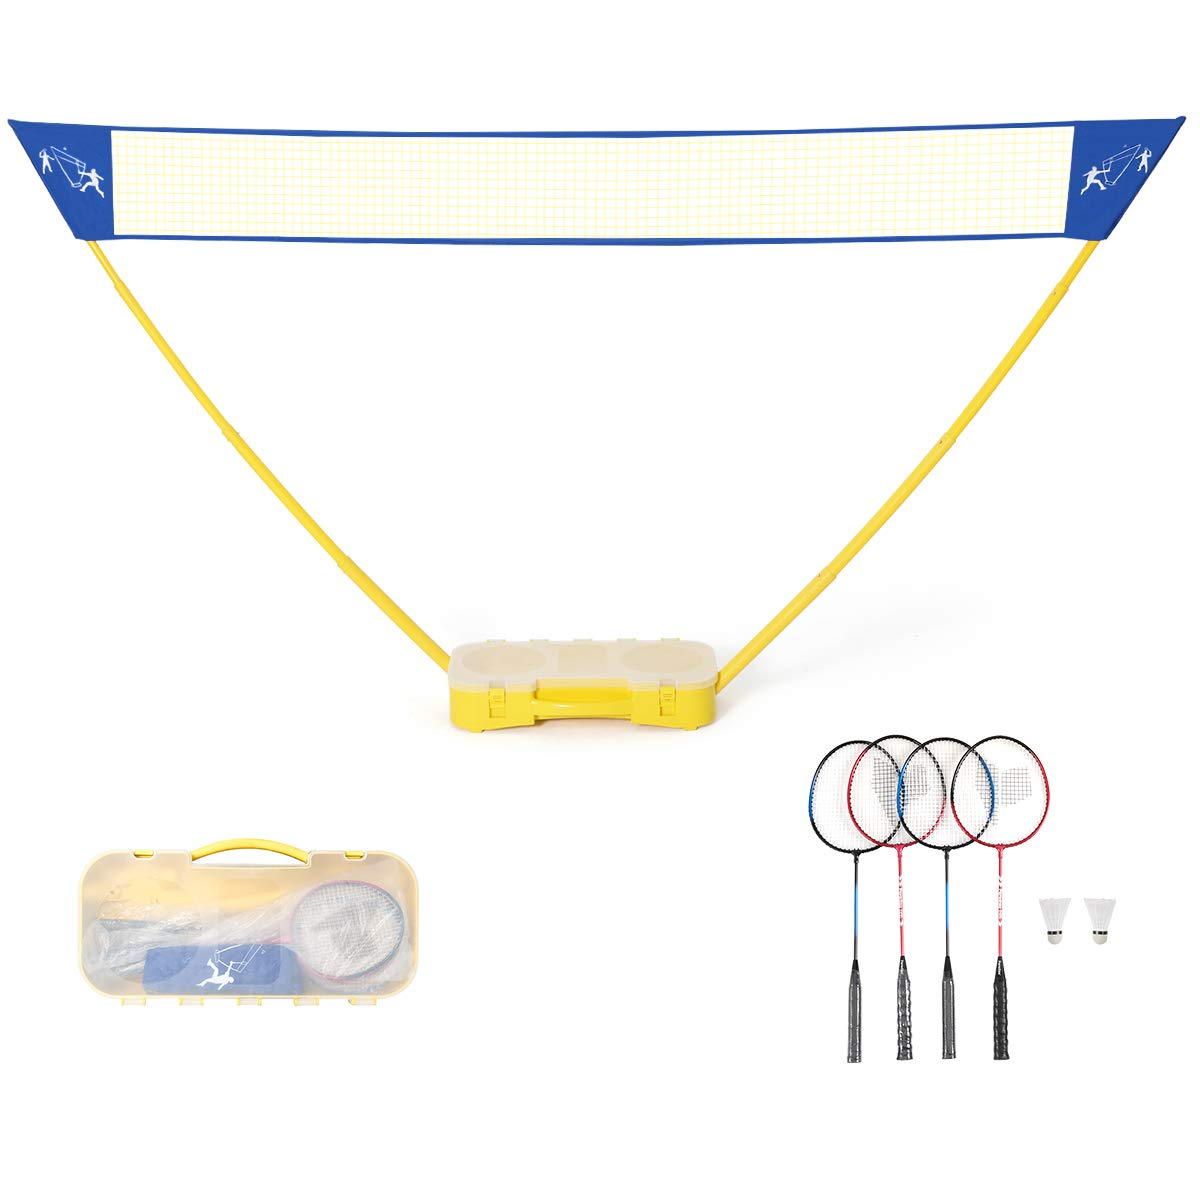 GOPLUS Portable Badminton Set Outdoor Folding Adjustable Tennis Badminton Volleyball Net 10Ft w/Stand, Carry Box (4 Player)